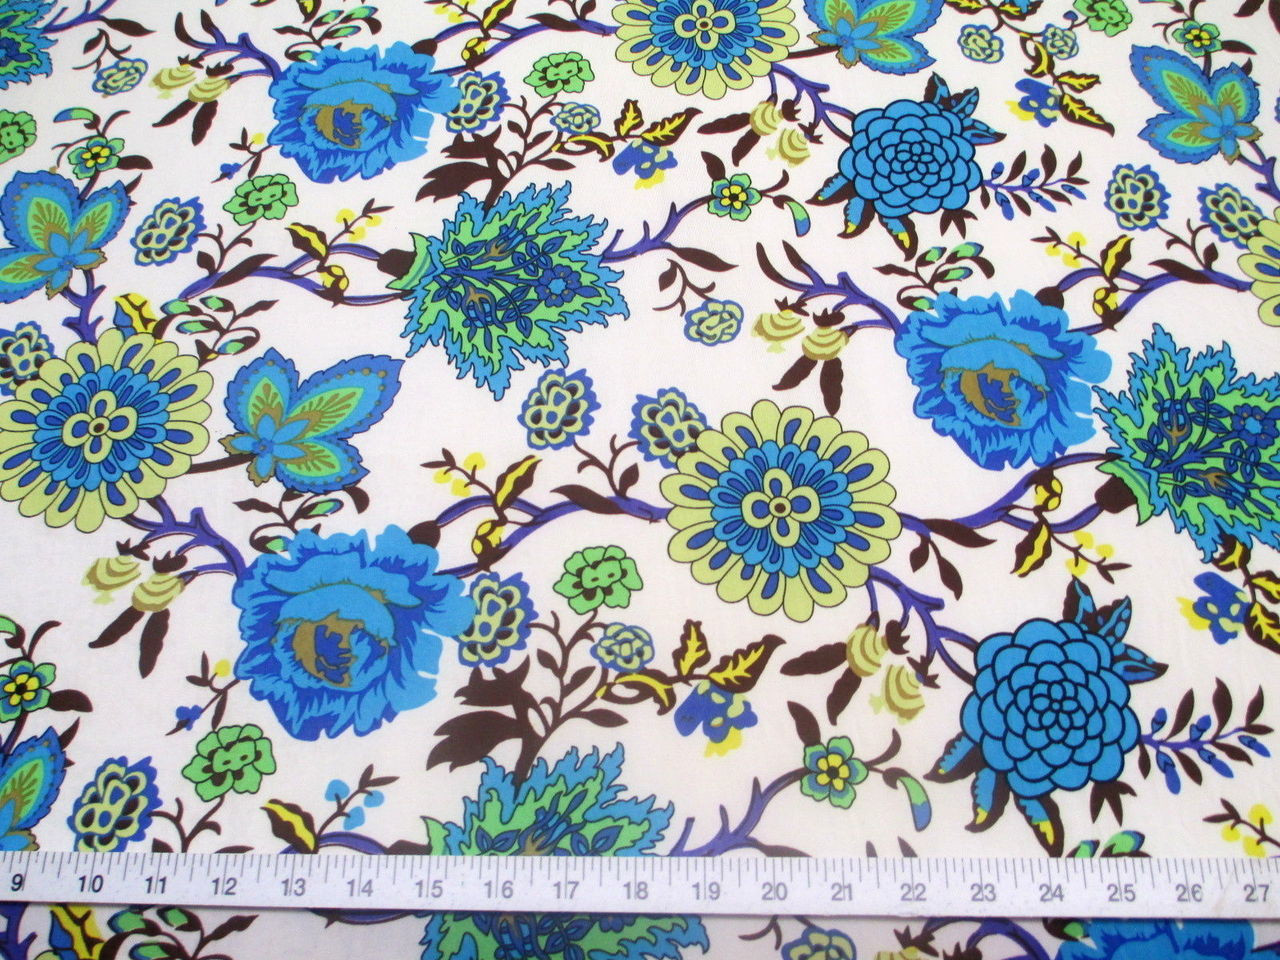 Printed Lycra Spandex Stretch Turquoise Blue White Floral Discount